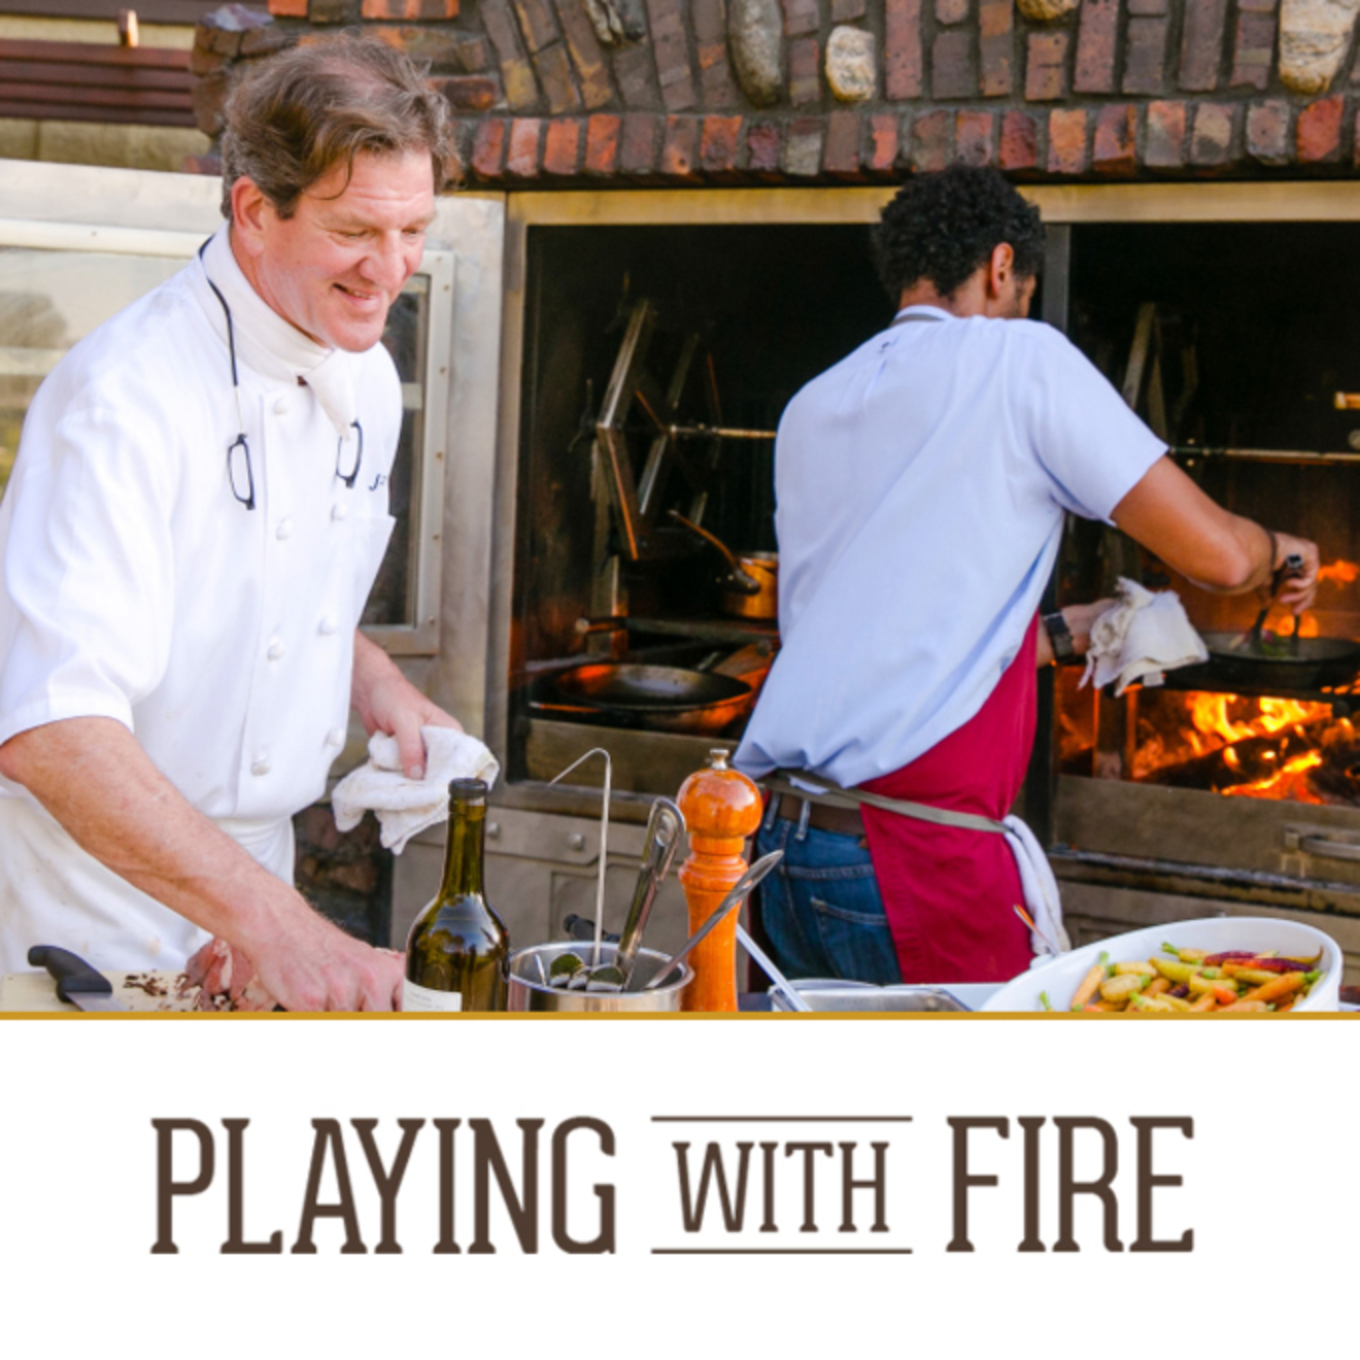 Playing With Fire Series 6 10 19 Tickets The Lodge At